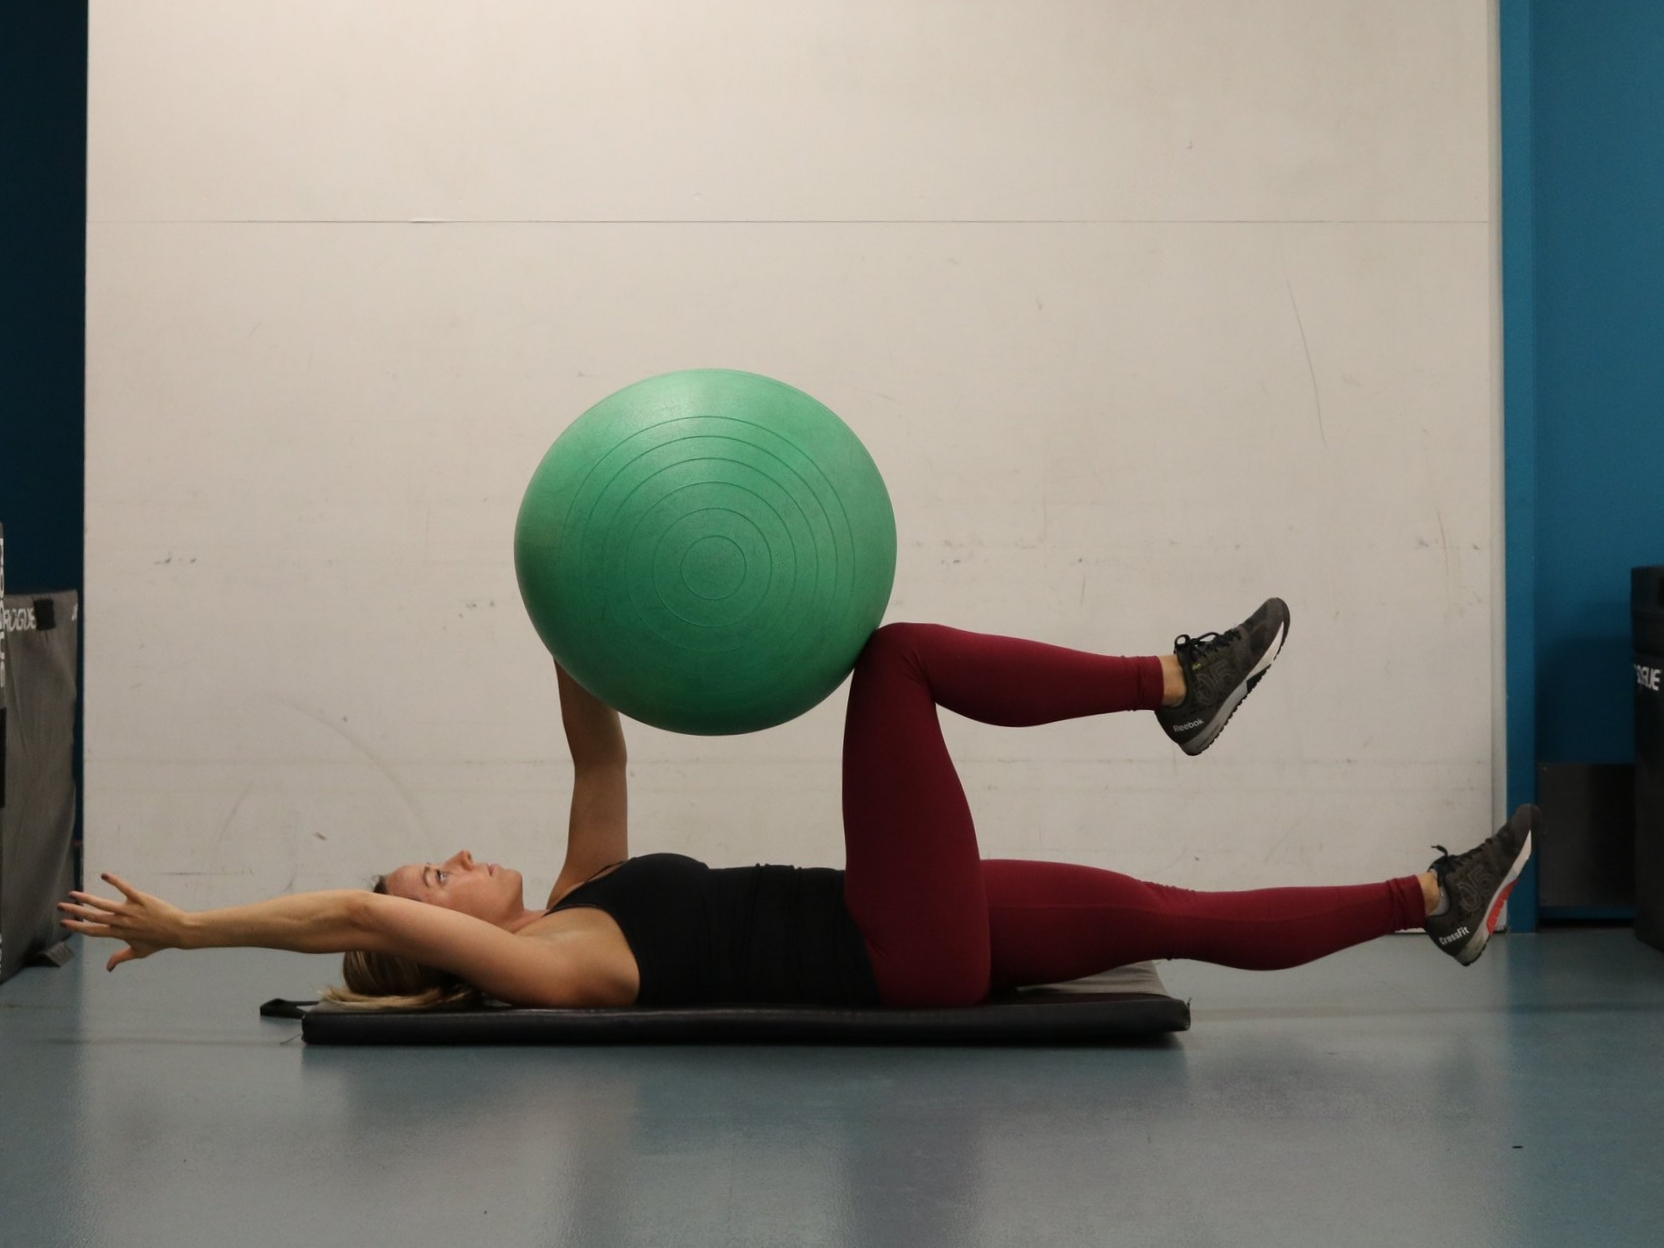 Extend opposite side, right arm and left leg